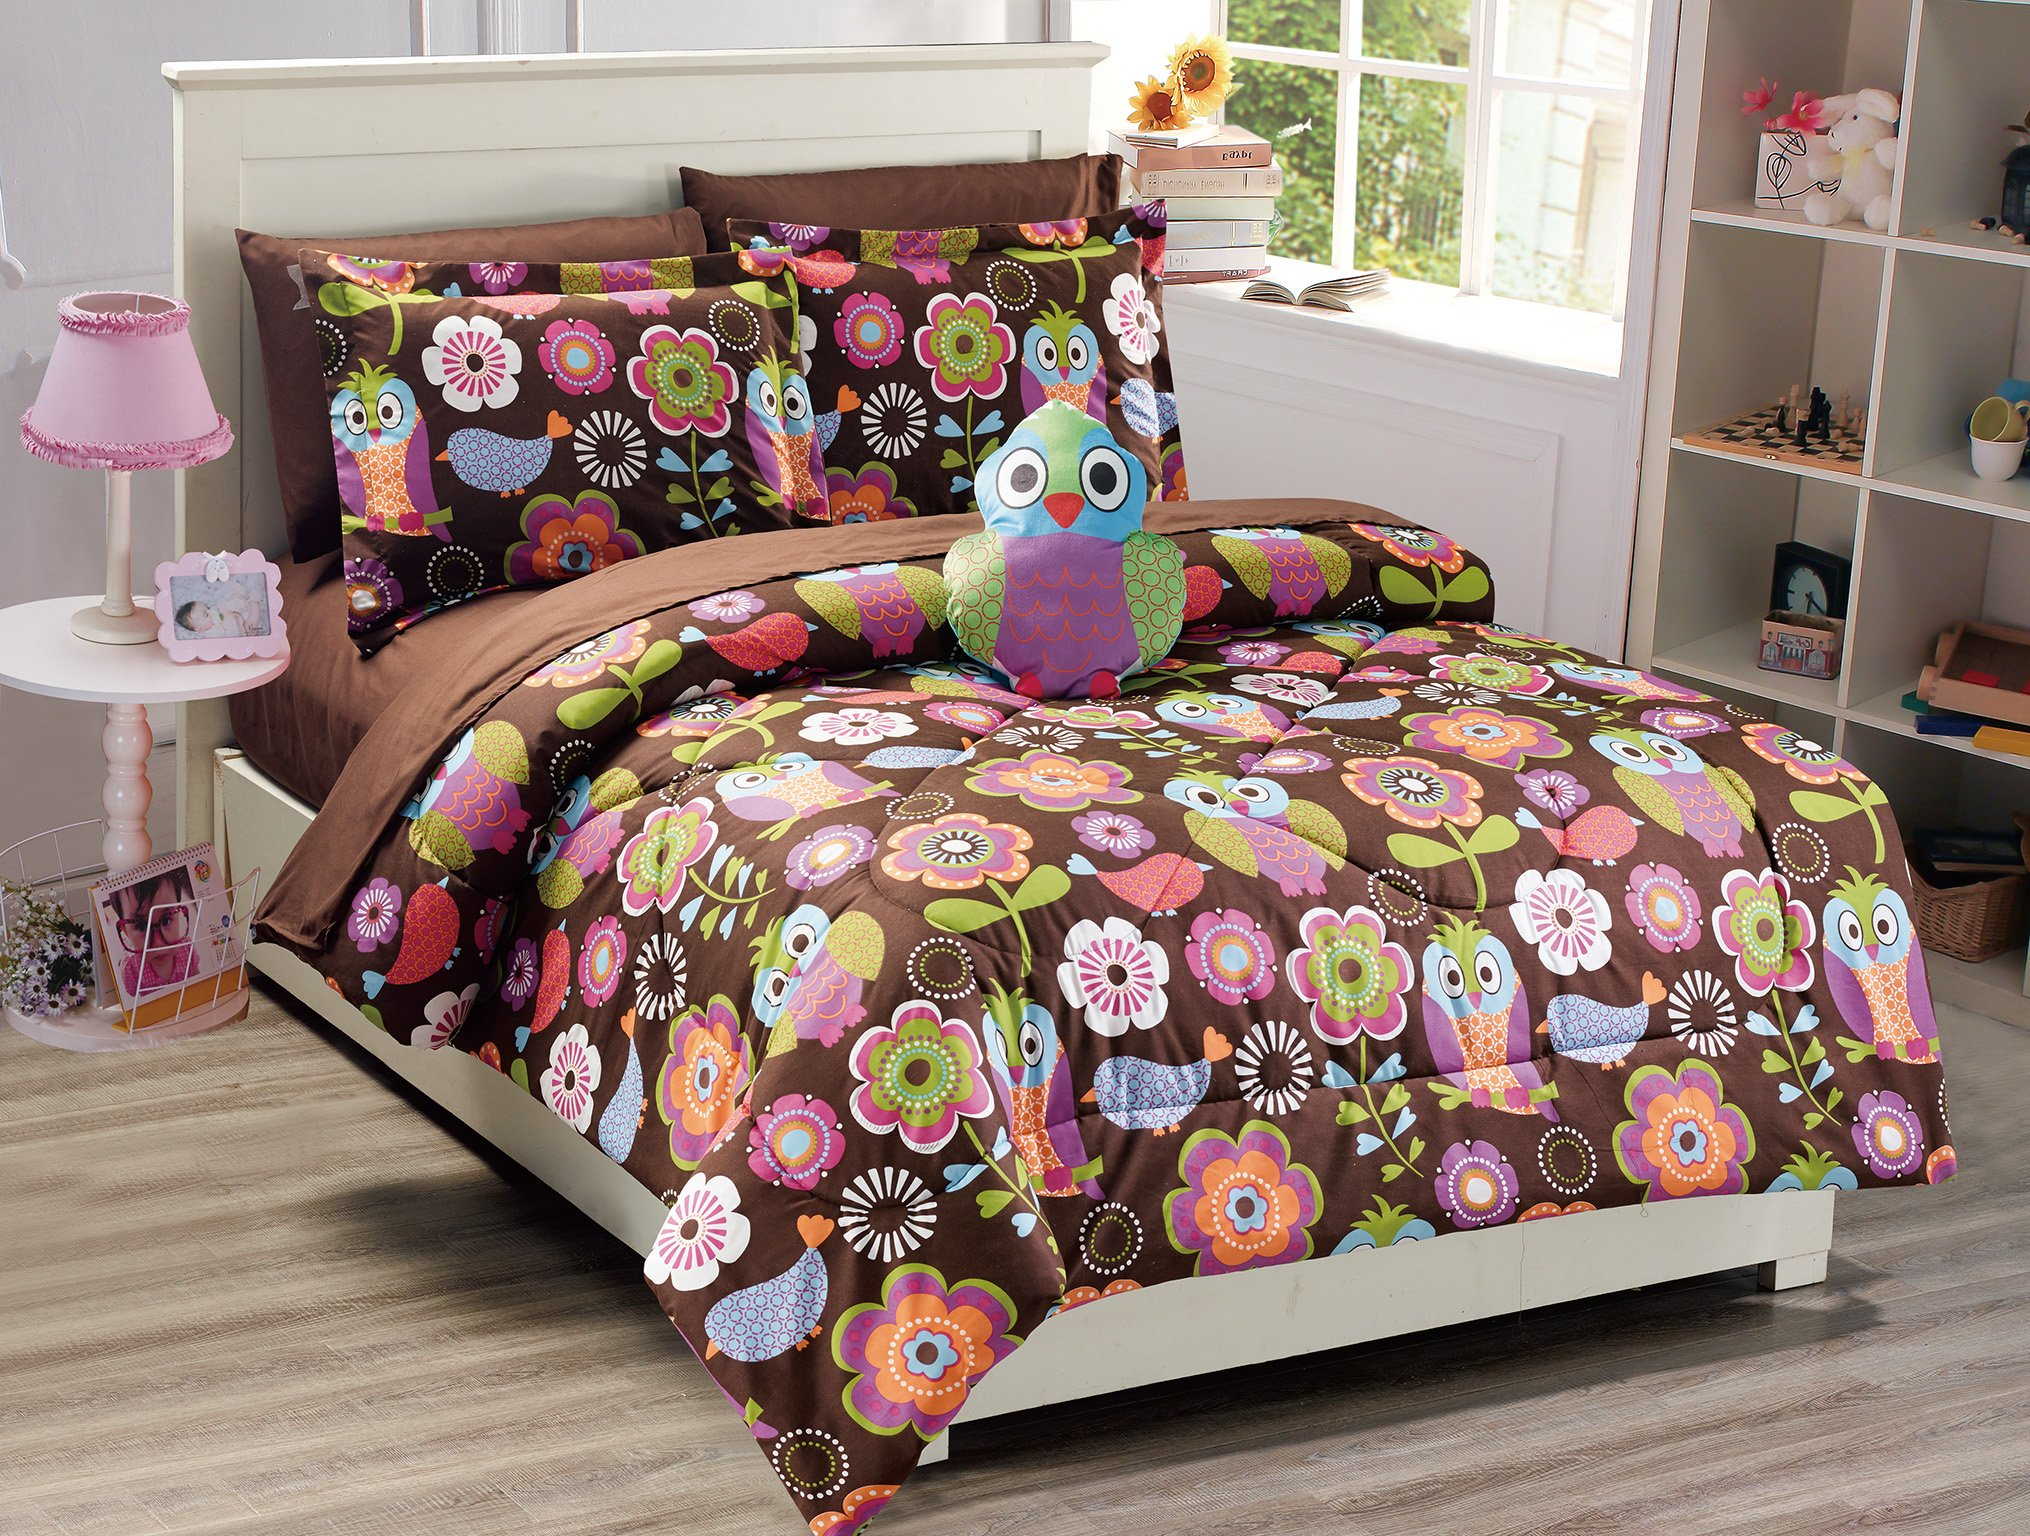 Mk Collection Owl Brown Purple Pink Green White 8pc Full Size Comforter And Sheet Set With Furry Buddy Included New (Full, Comforter Set)